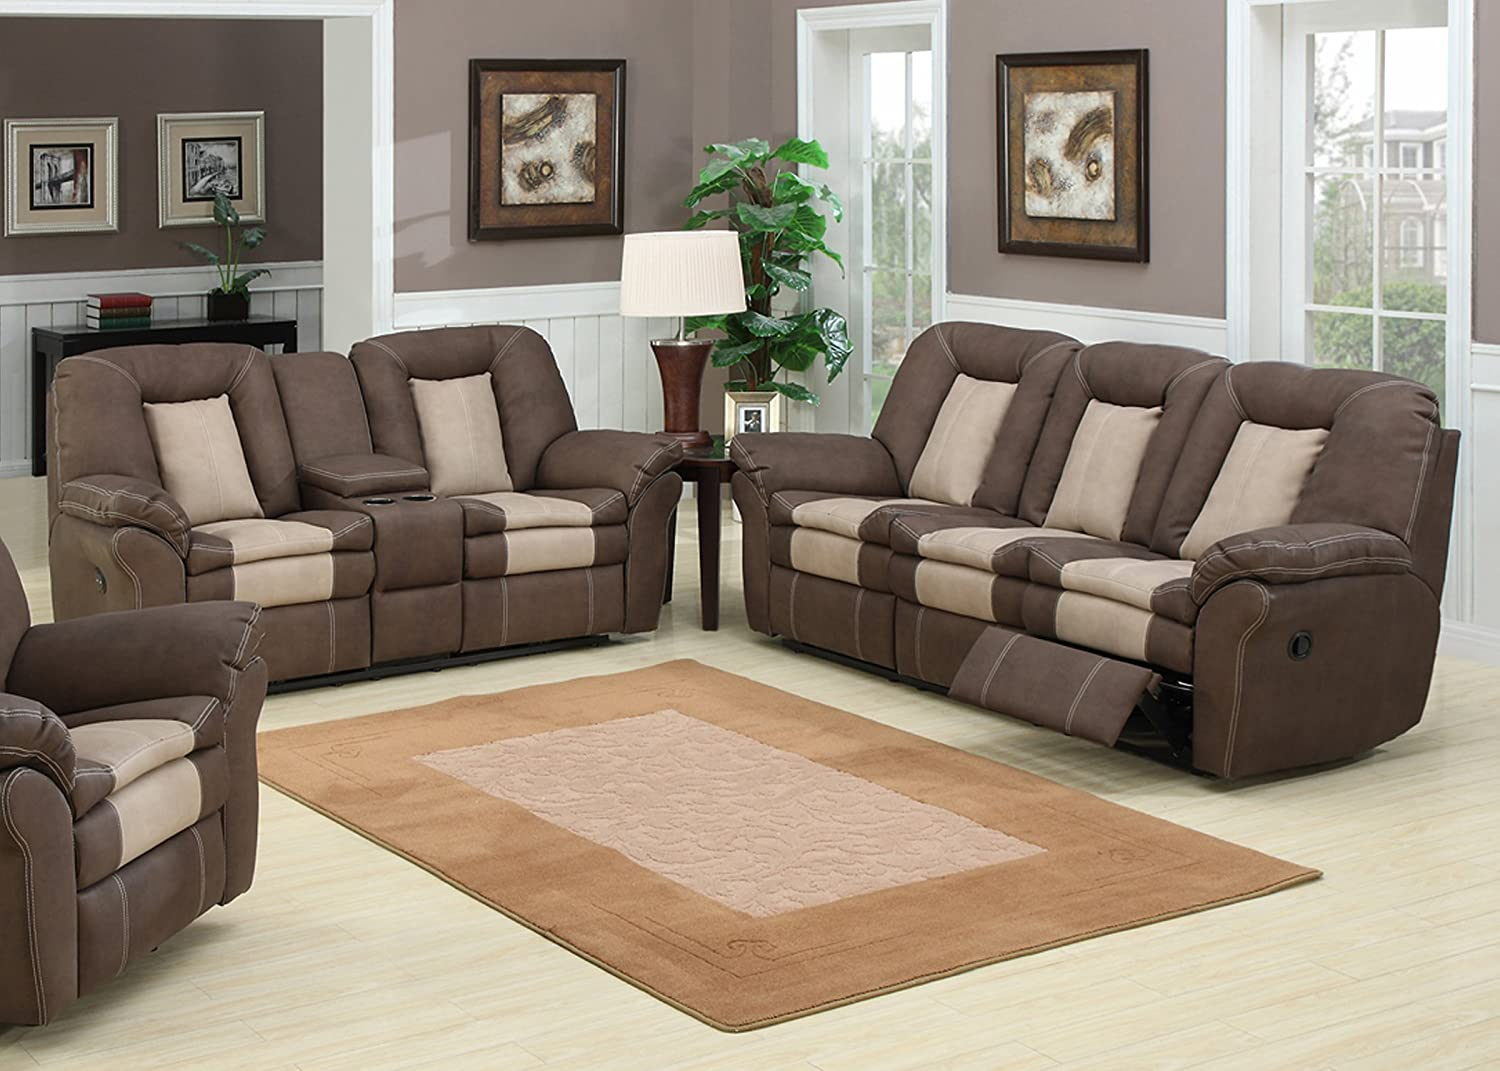 Amazon com ac pacific 2 piece 2 tone leather living room set with 4 recliners sofa and loveseat brown kitchen dining